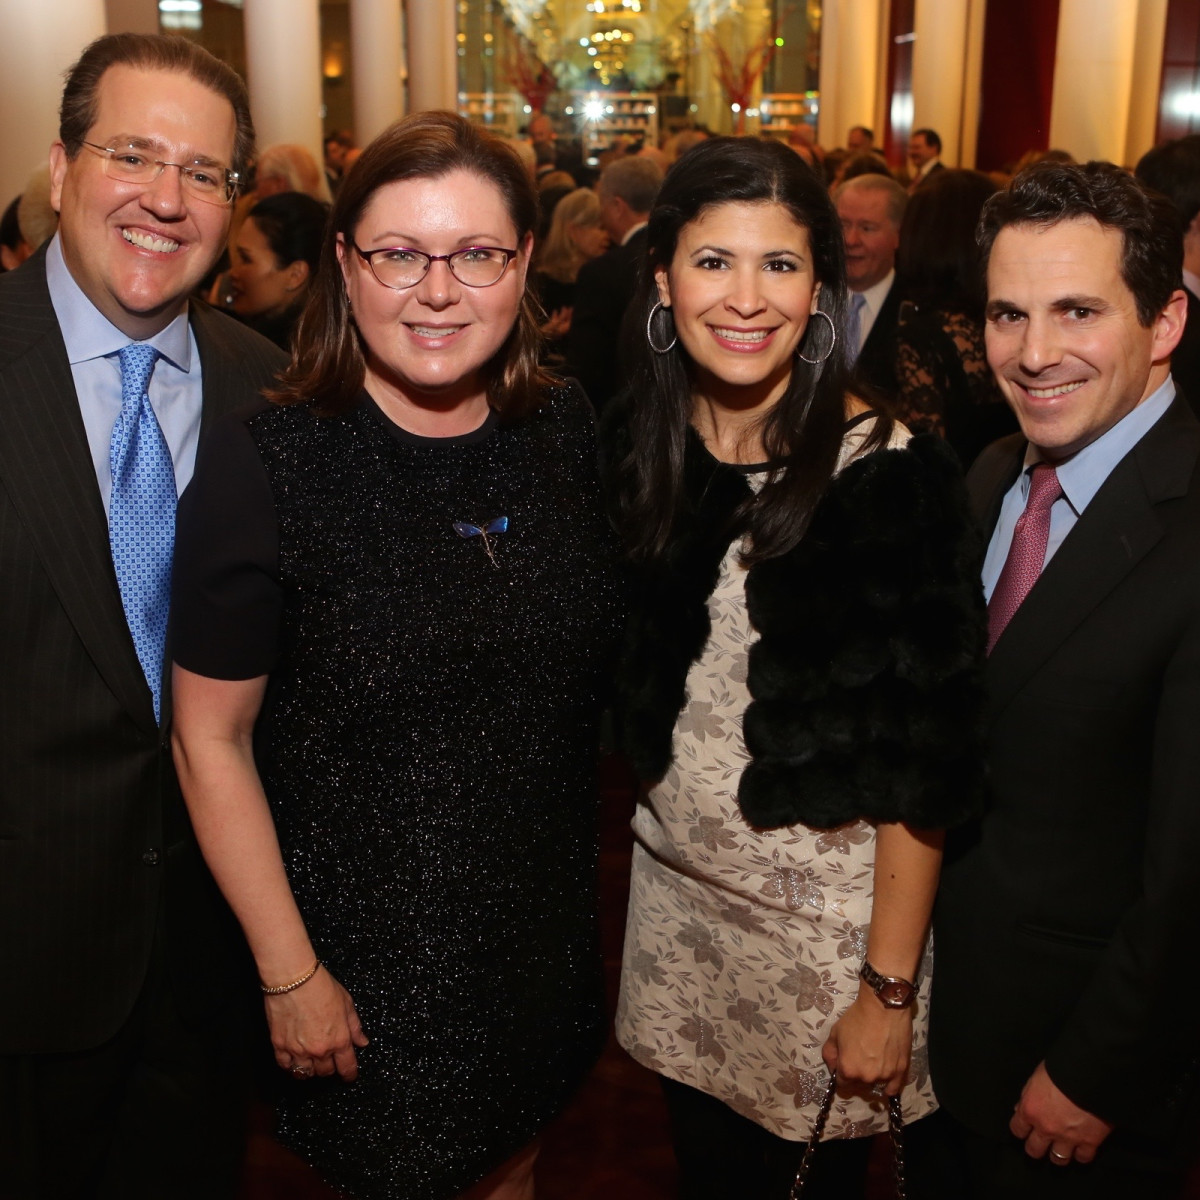 News, Houston Ballet Jubilee of Dance, Dec. 2015,  Jim Jordan Shawn Stephens, Kristi Bradshaw, Chris Bradshaw